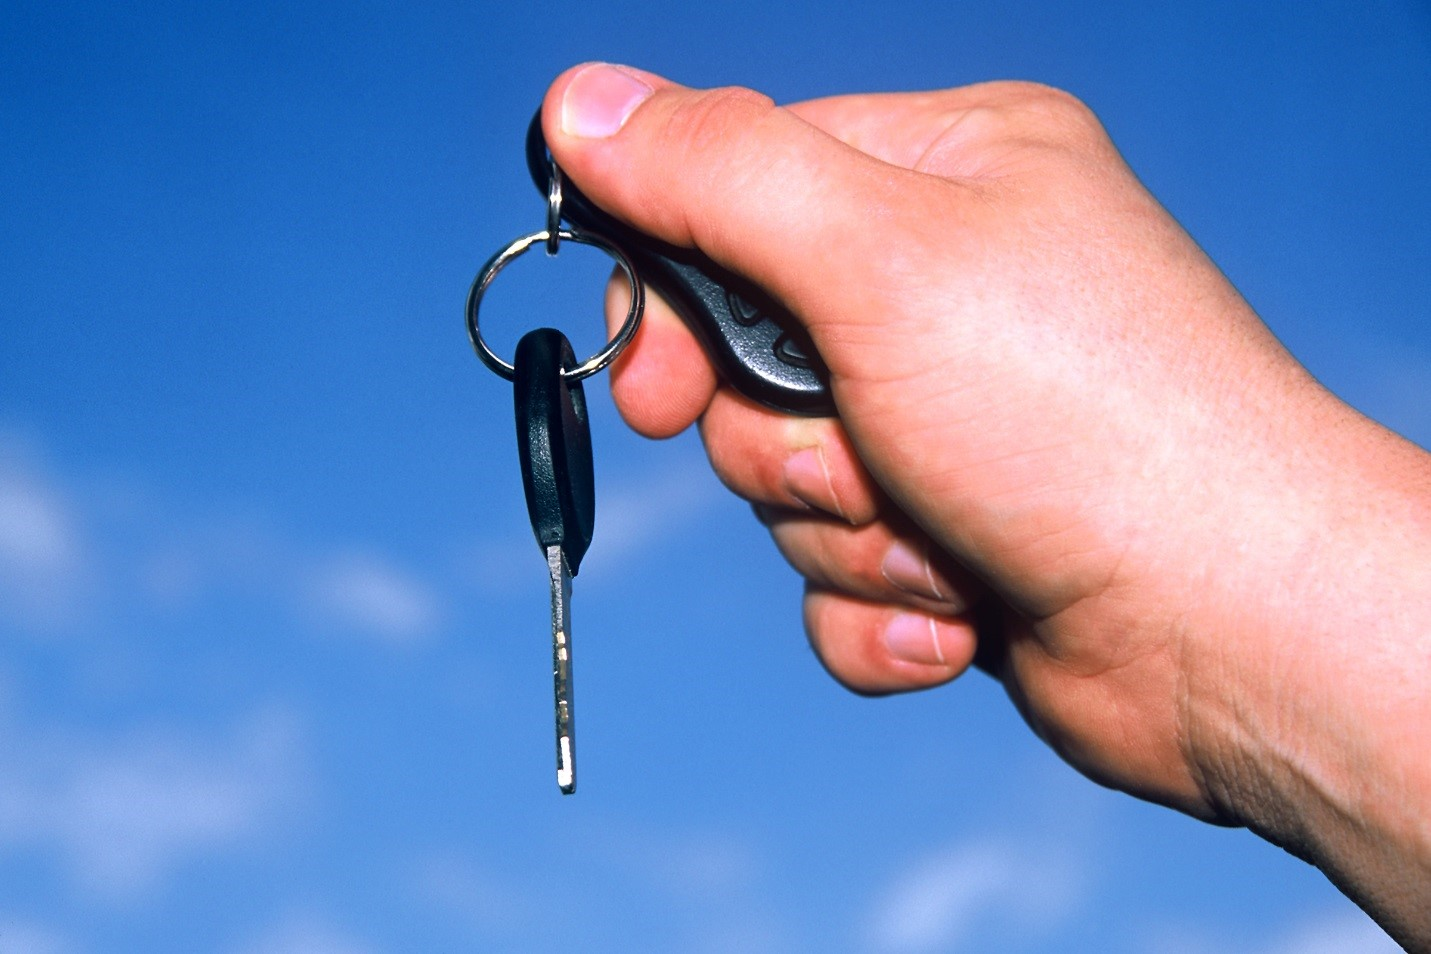 How Letting Others Borrow Your Vehicle Could Affect Your Car Insurance Policy on avanteinsurance.com